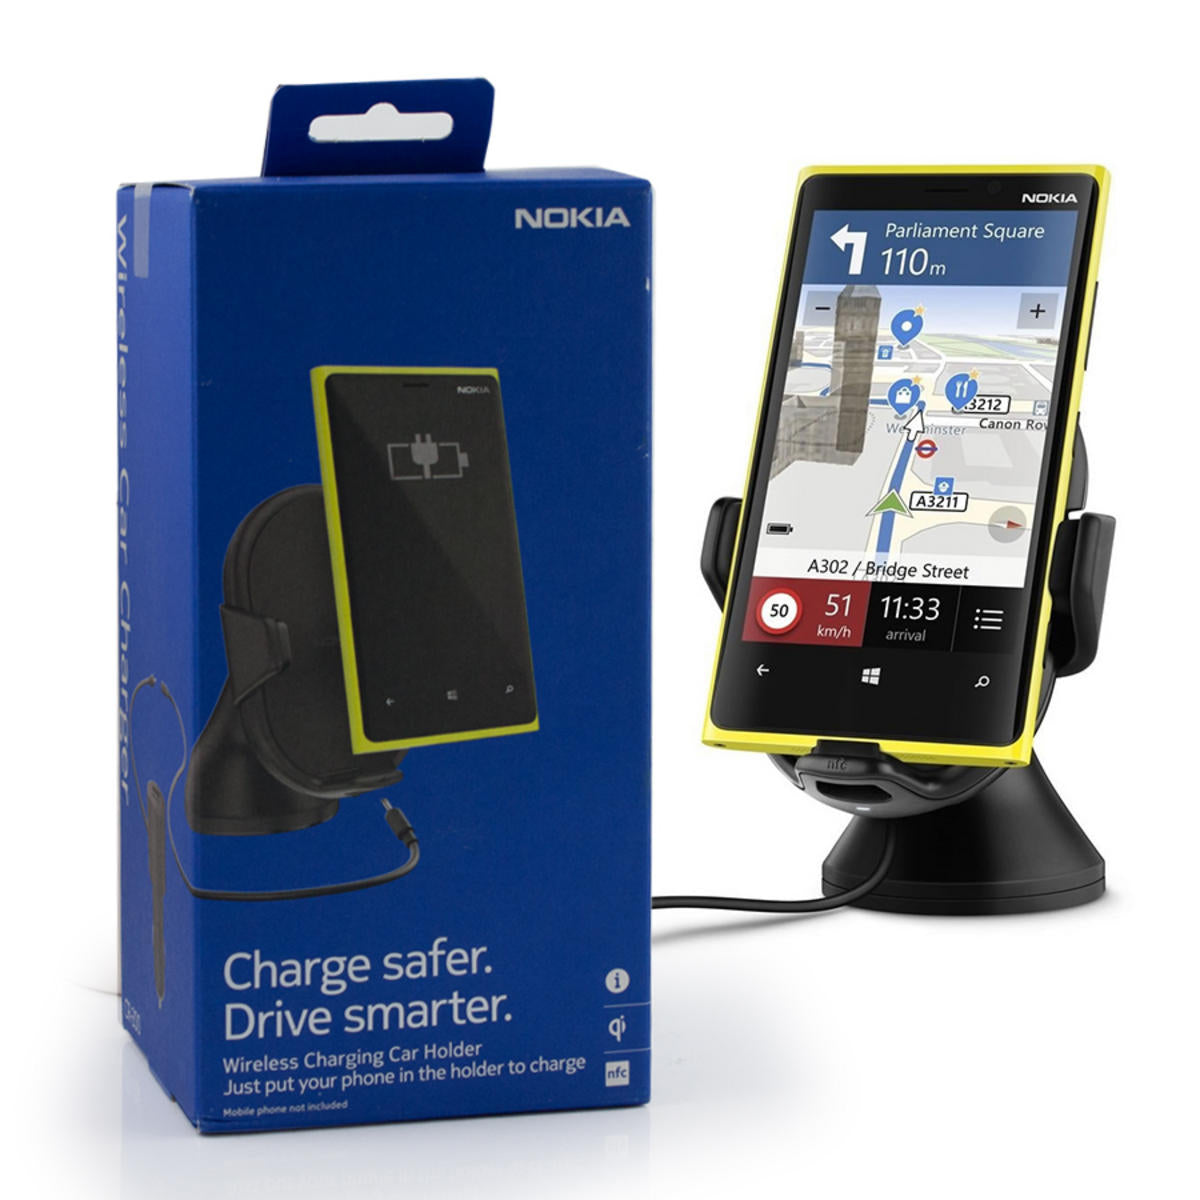 Nokia CR-200 Wireless Charging NFC Car Holder